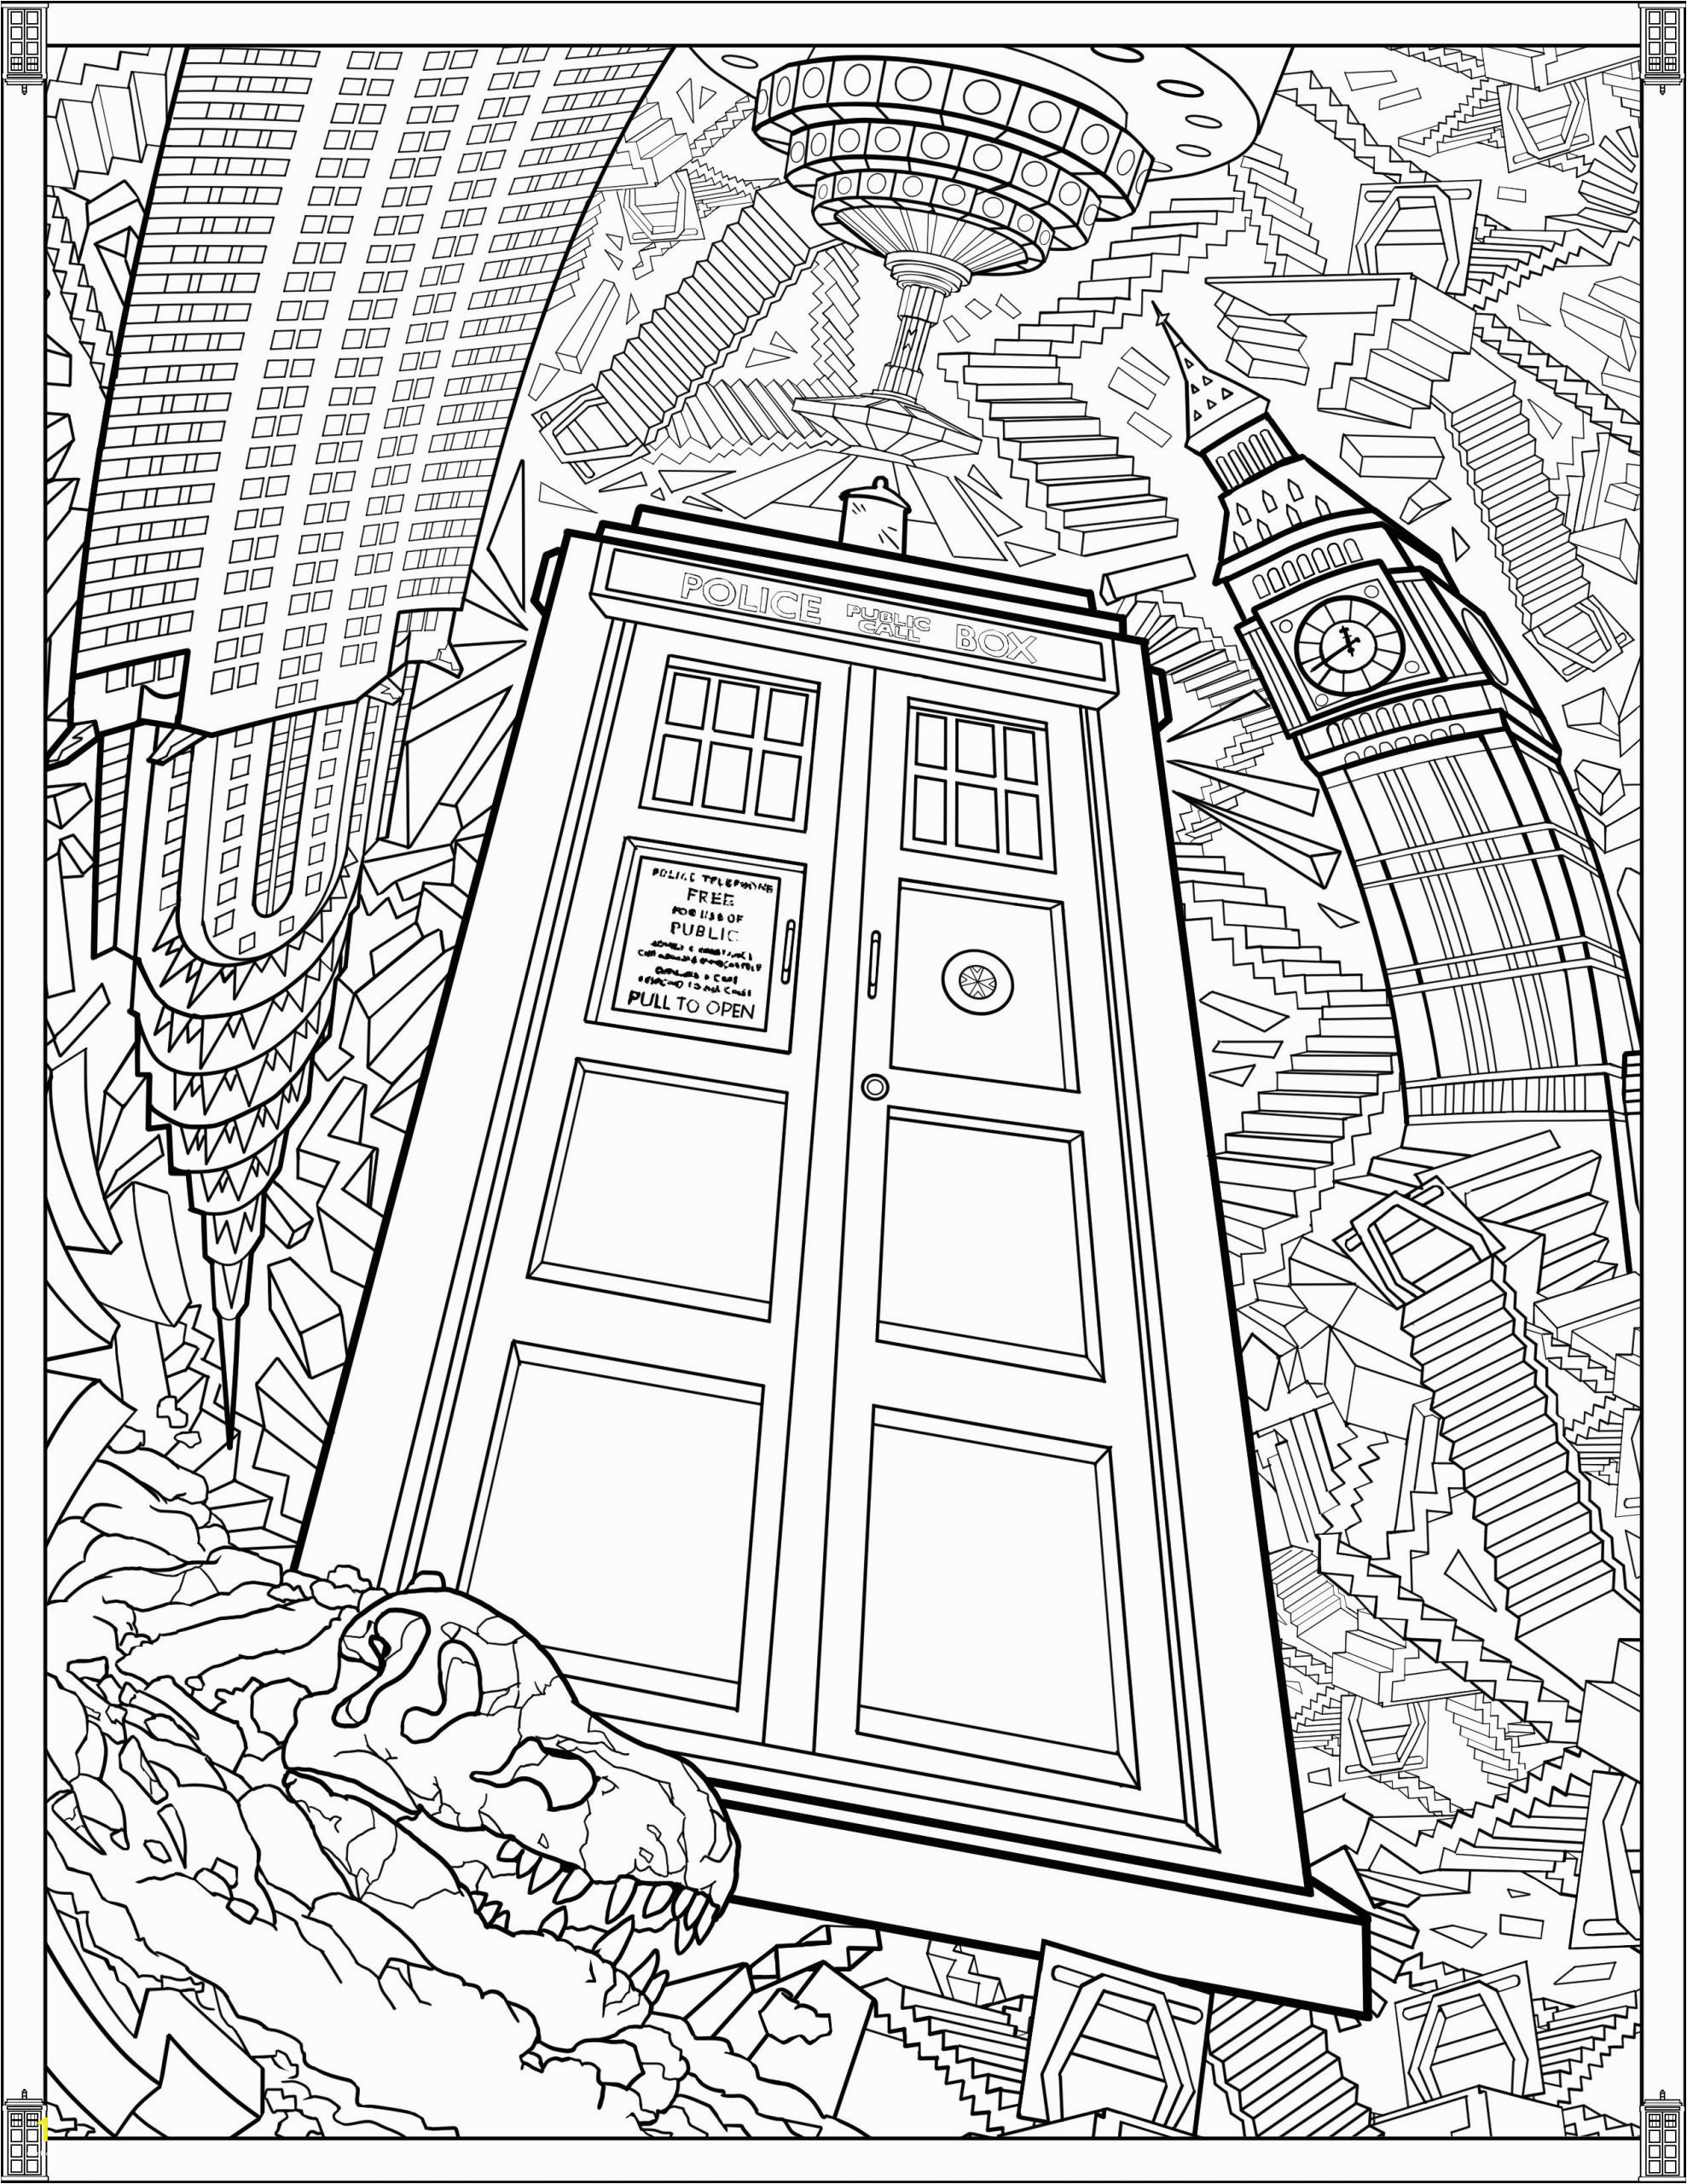 free printable childrens coloring pages luxury doctor who coloring pages best coloring pages for kids of free printable childrens coloring pages scaled